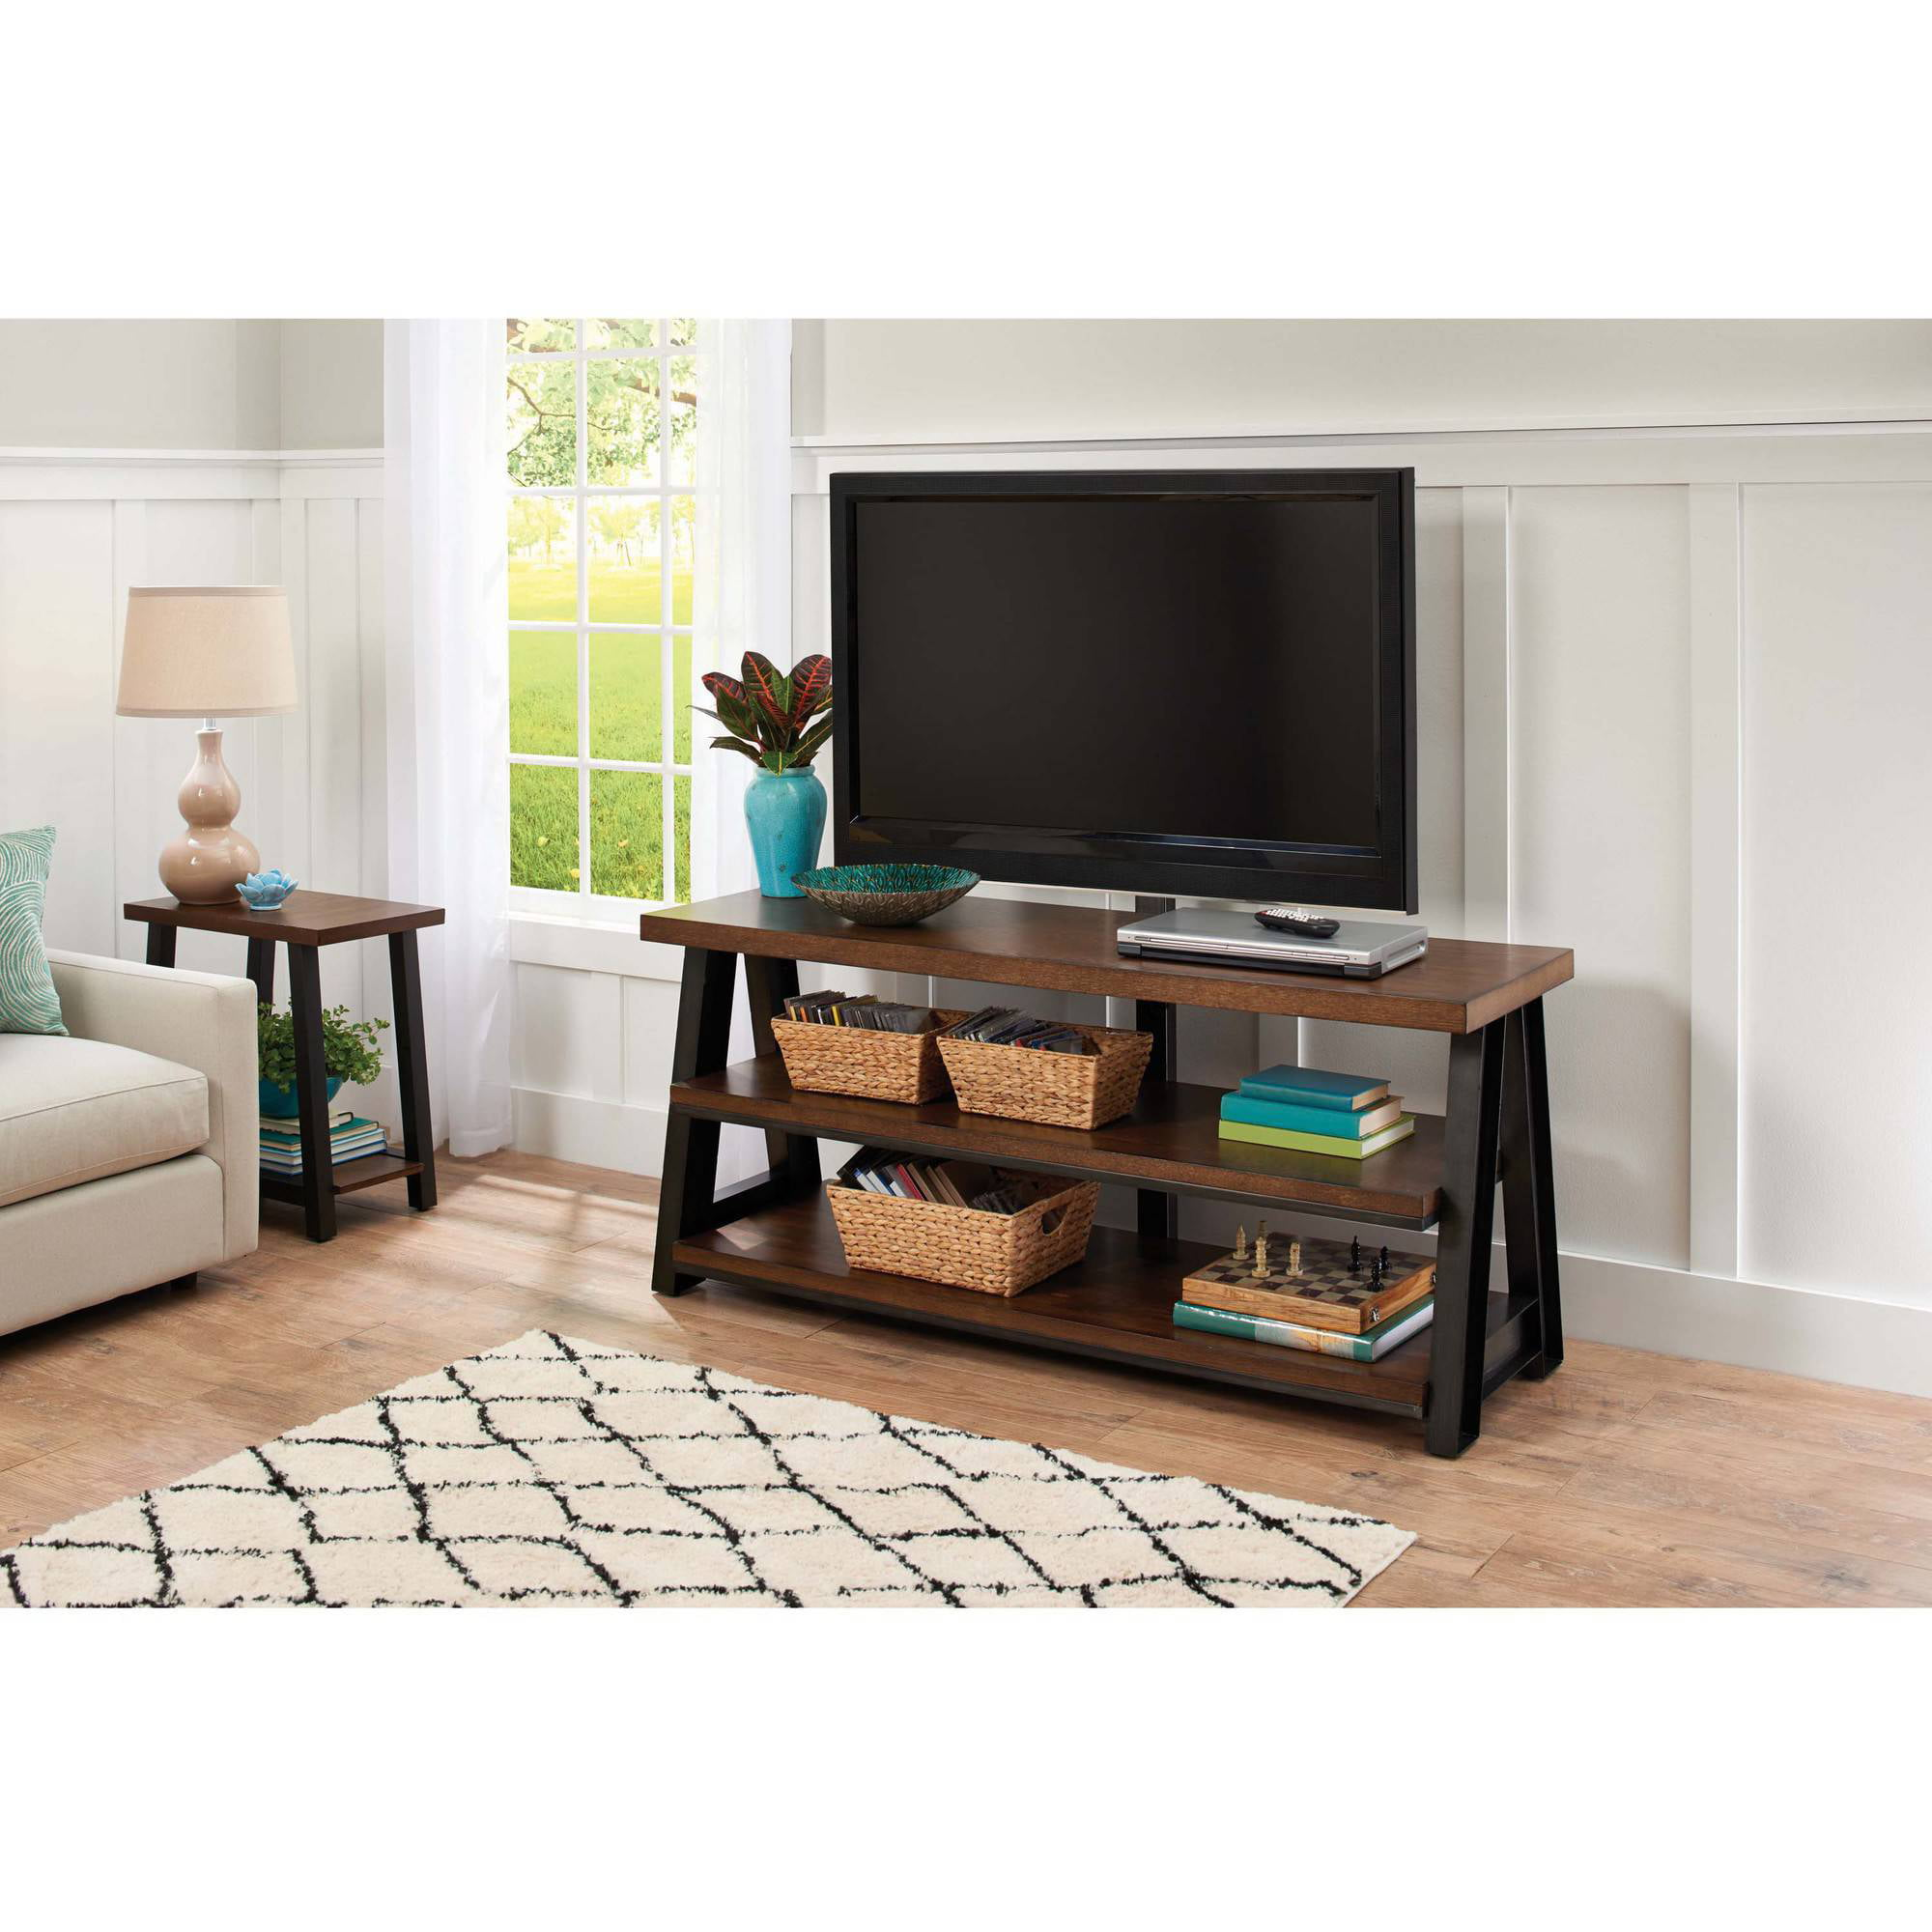 better homes and gardens mercer 3 in 1 brown tv stand for tvs up to 70 walmartcom - Better Home And Garden